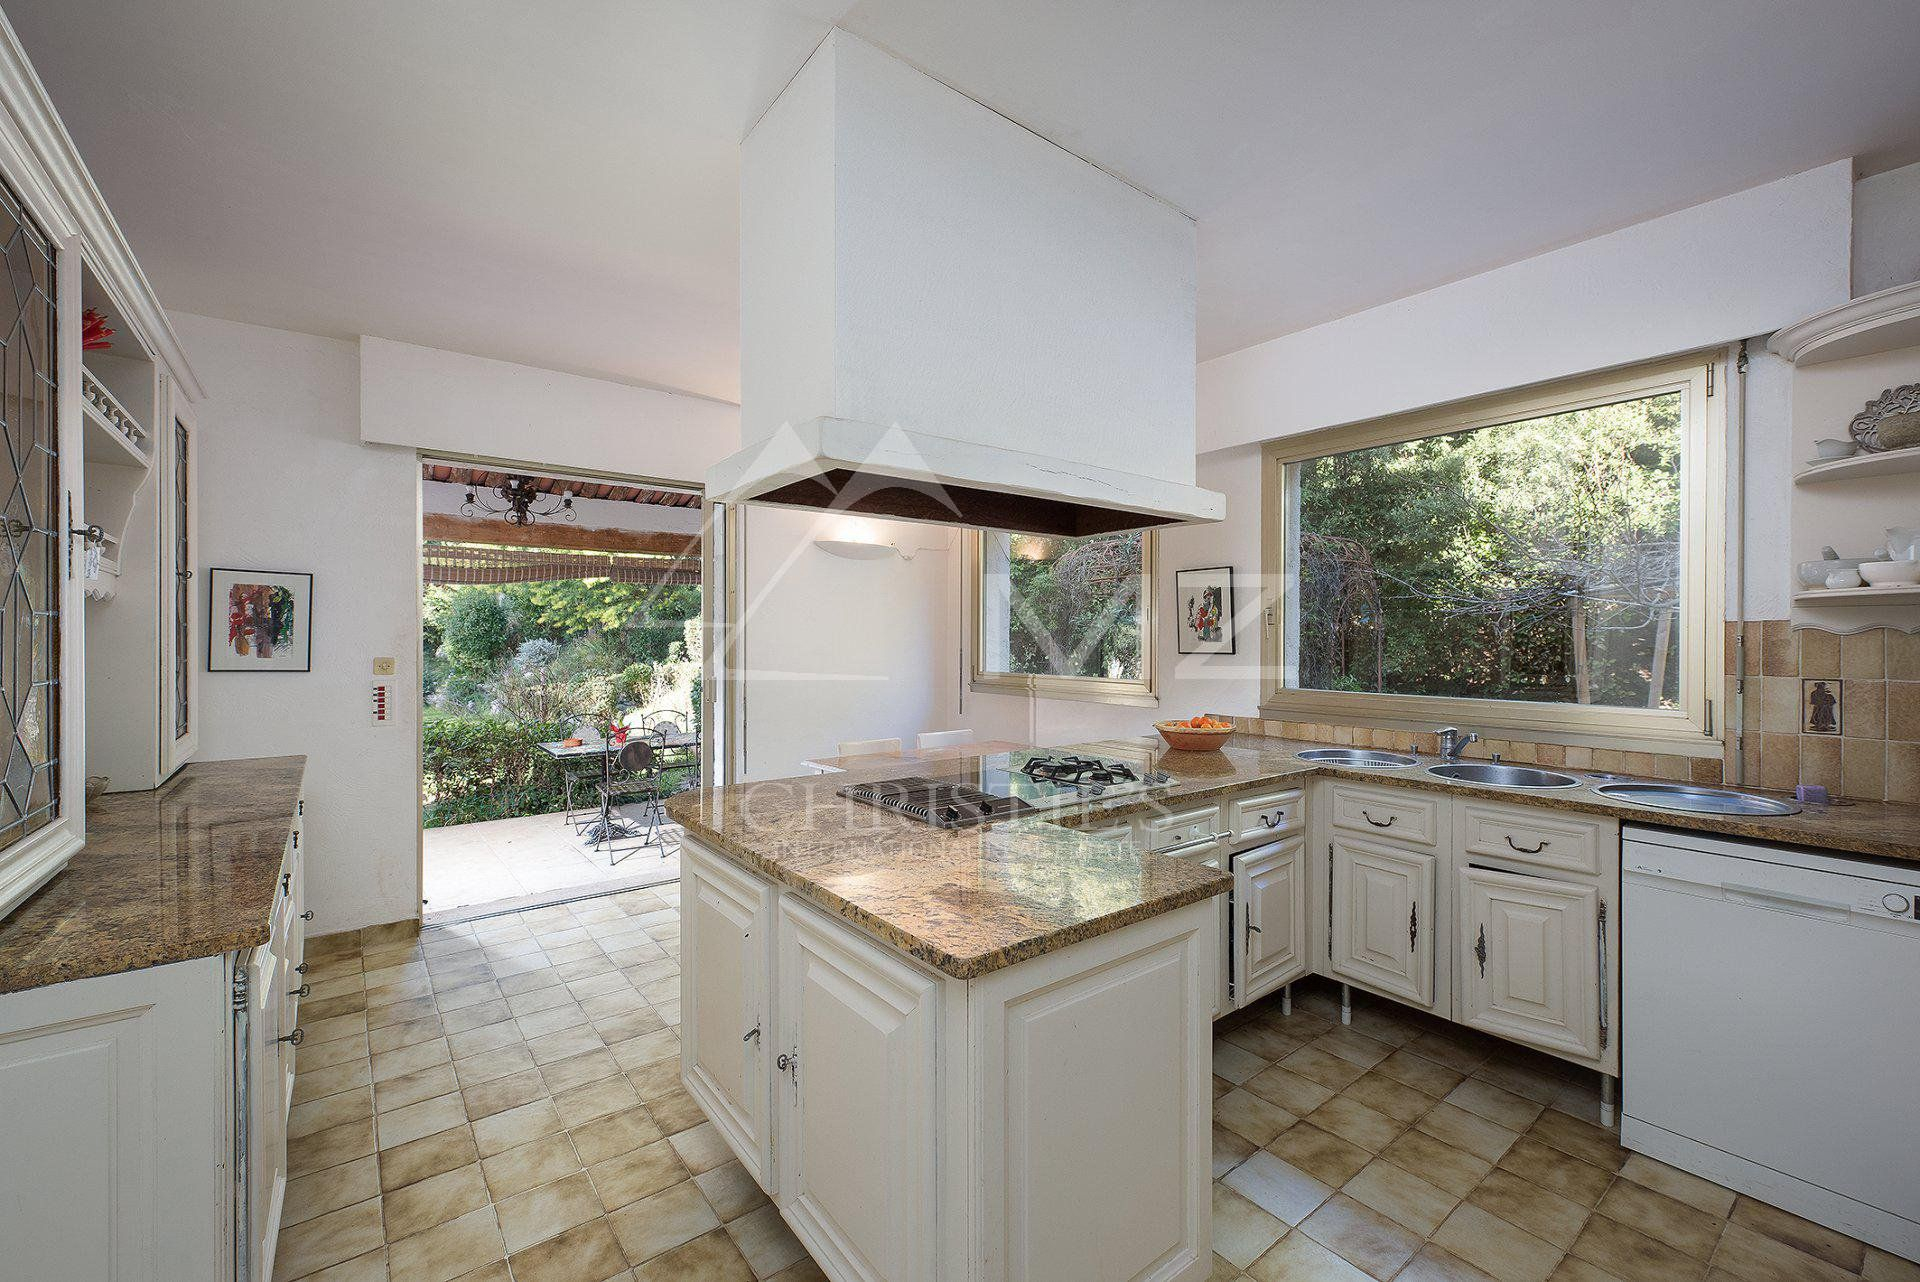 Cannes backcountry - Family villa with view